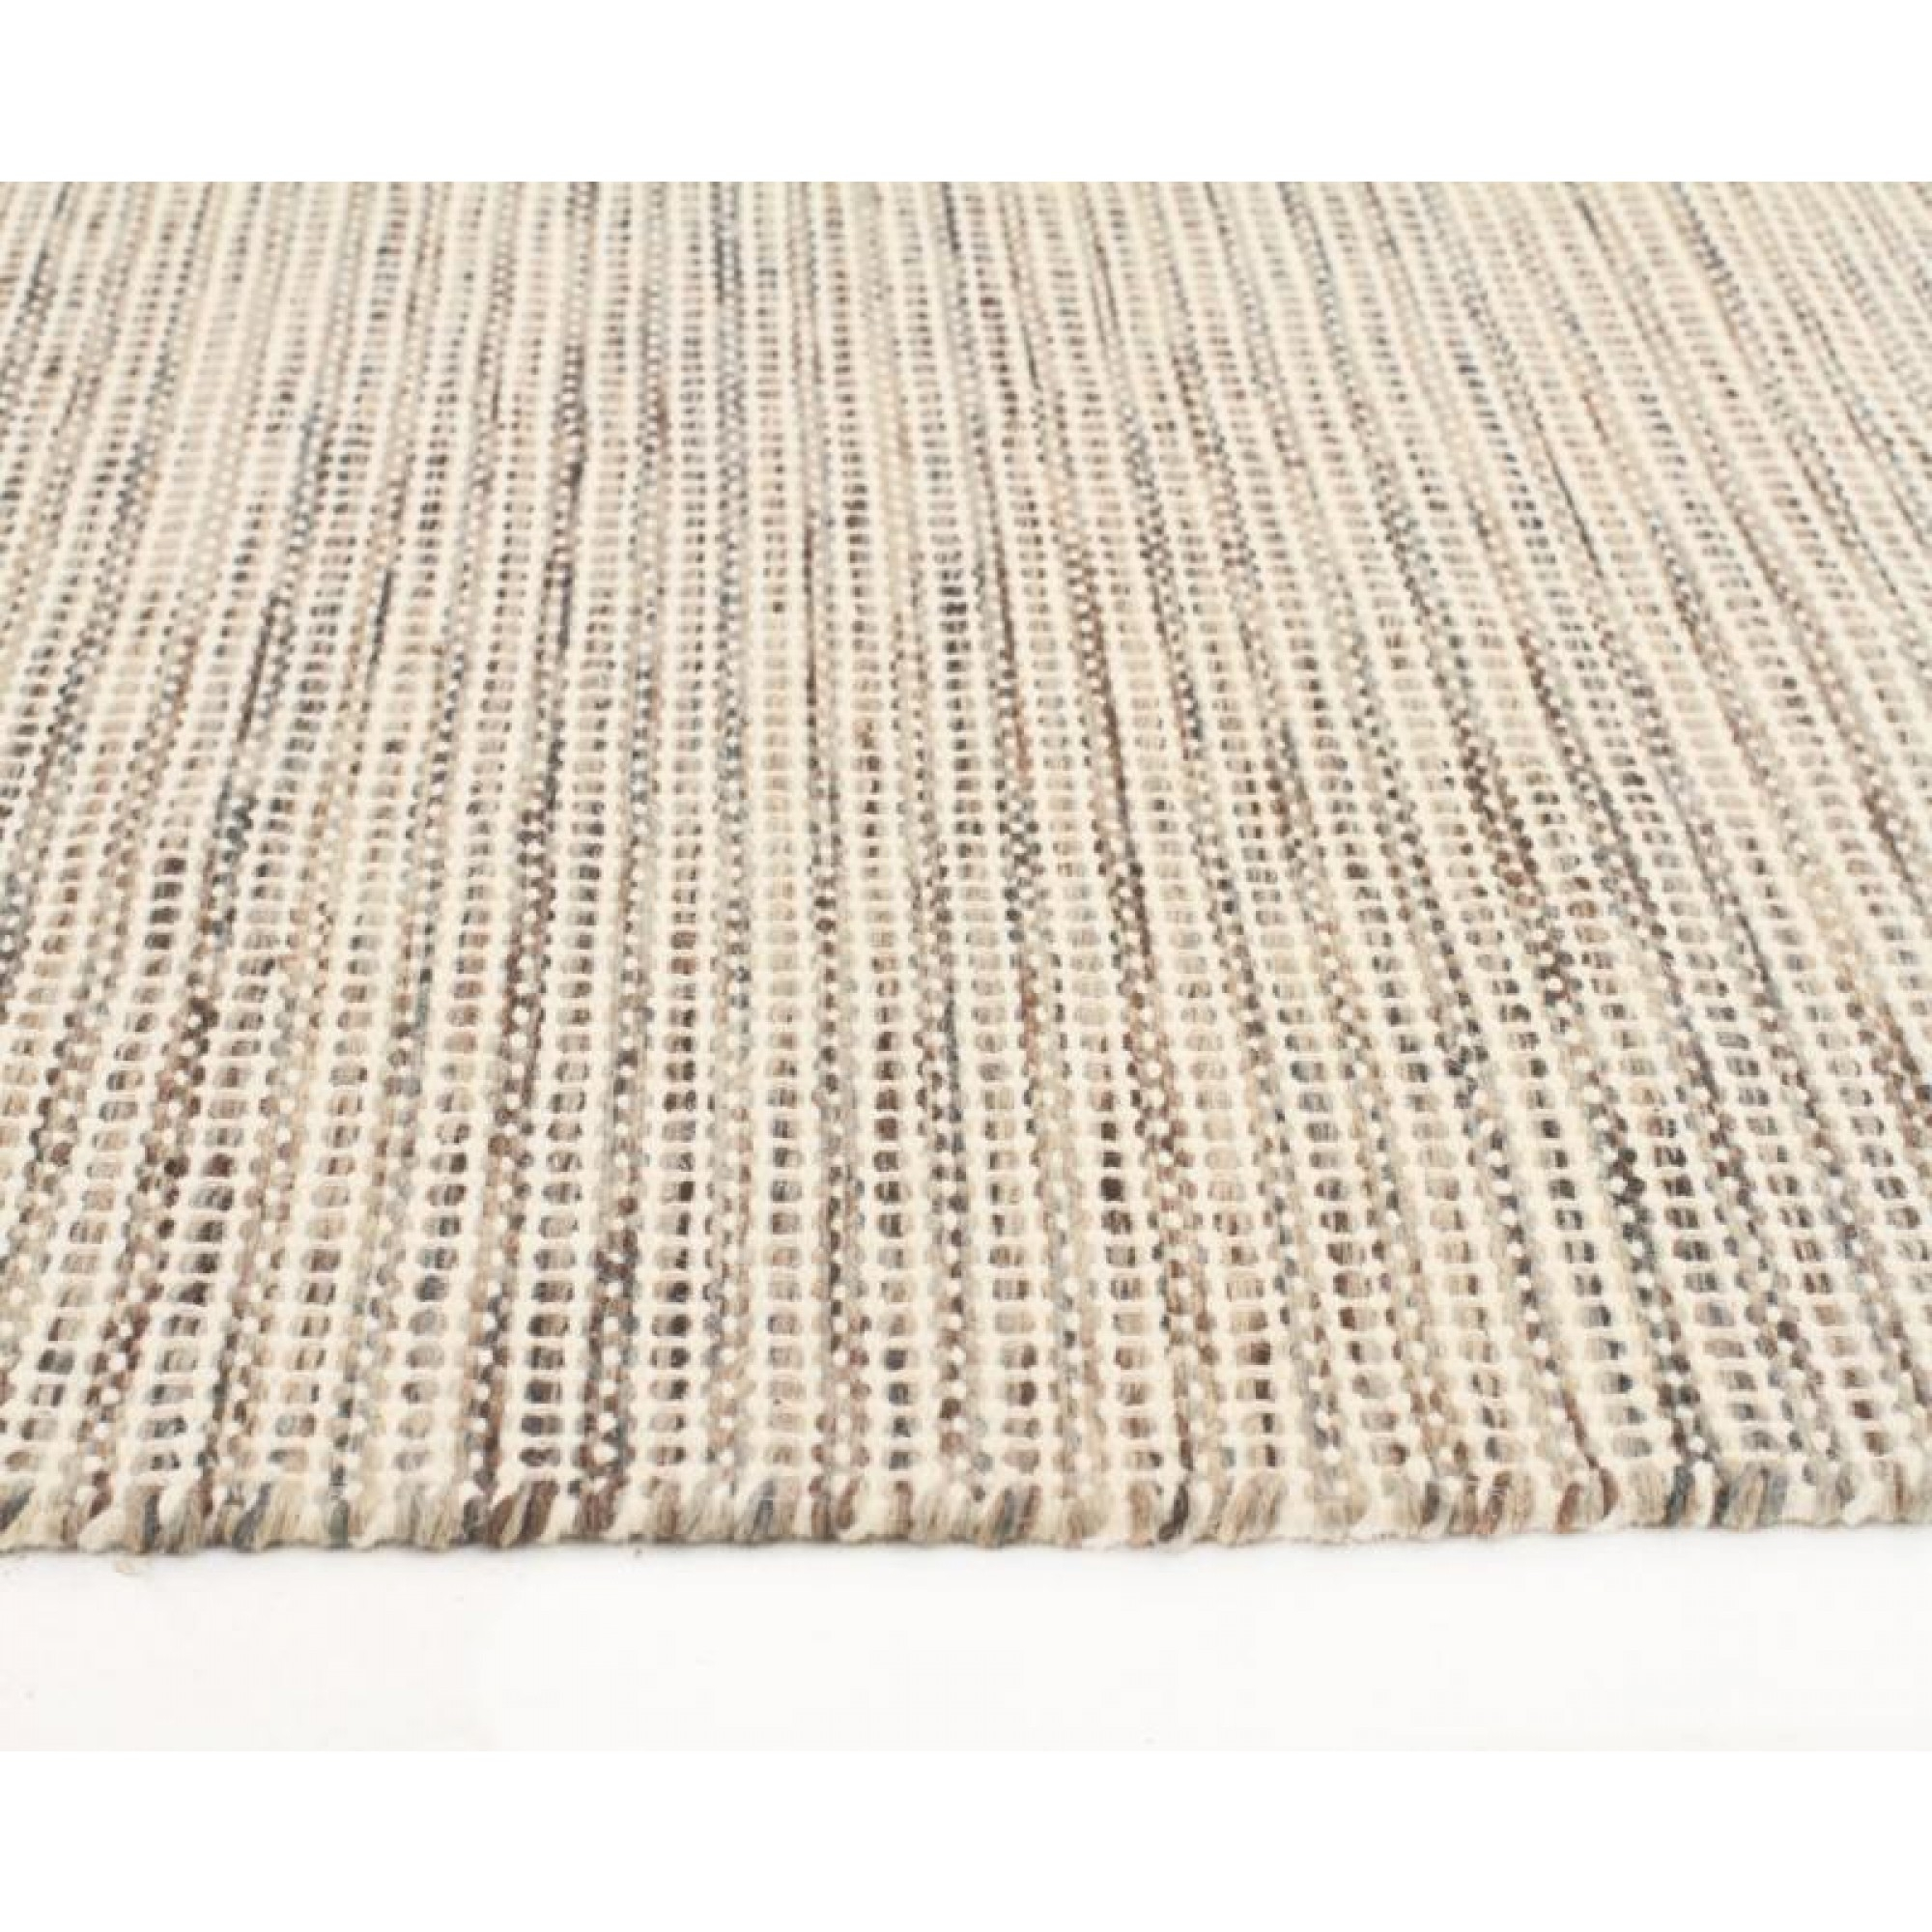 Wool Marel Natural Flat Weave Floor Area Rug Free Shipping Regarding Natural Wool Area Rugs (#15 of 15)